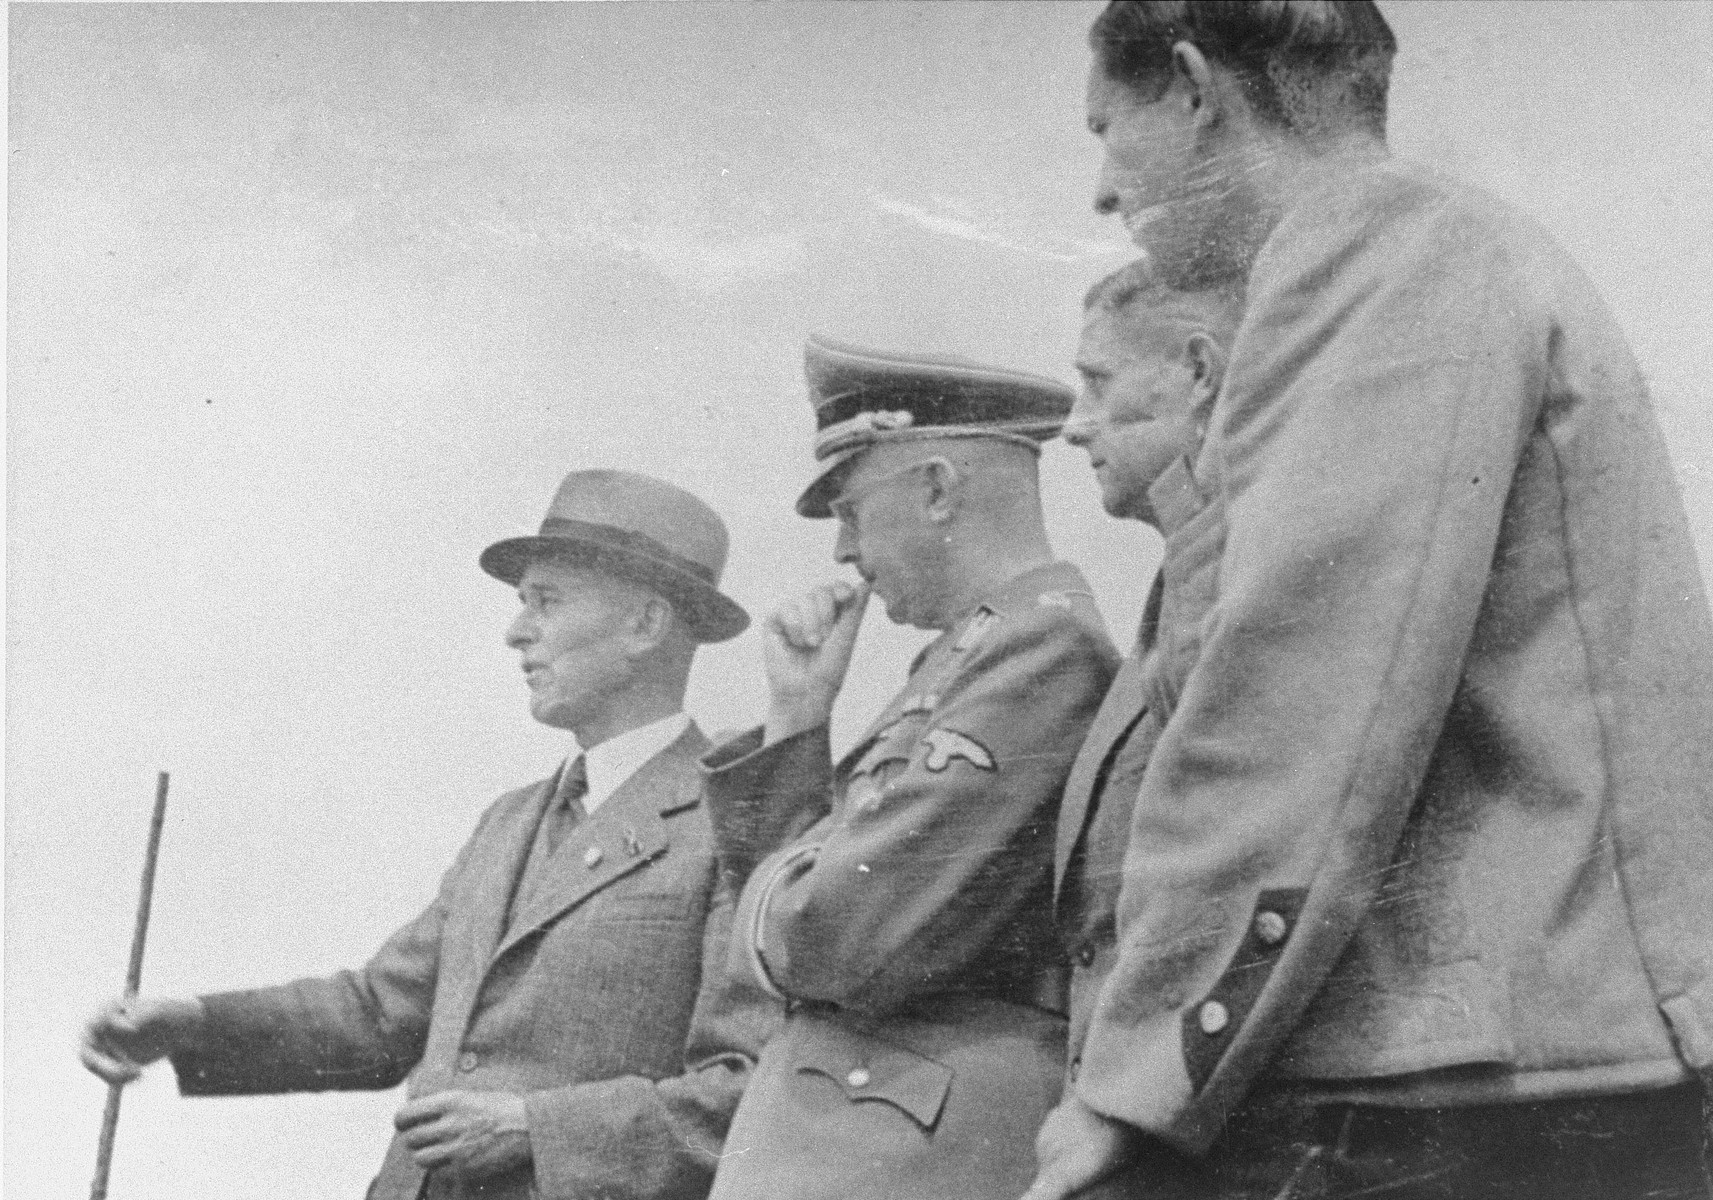 Reichsfuehrer SS Heinrich Himmler stands alongside Max Faust (wearing the fedora) and other IG Farben engineers during a tour of the Monowitz-Buna building site.  Faust, who was an IG Farben engineer, was the head of building operations at Monowitz-Buna.